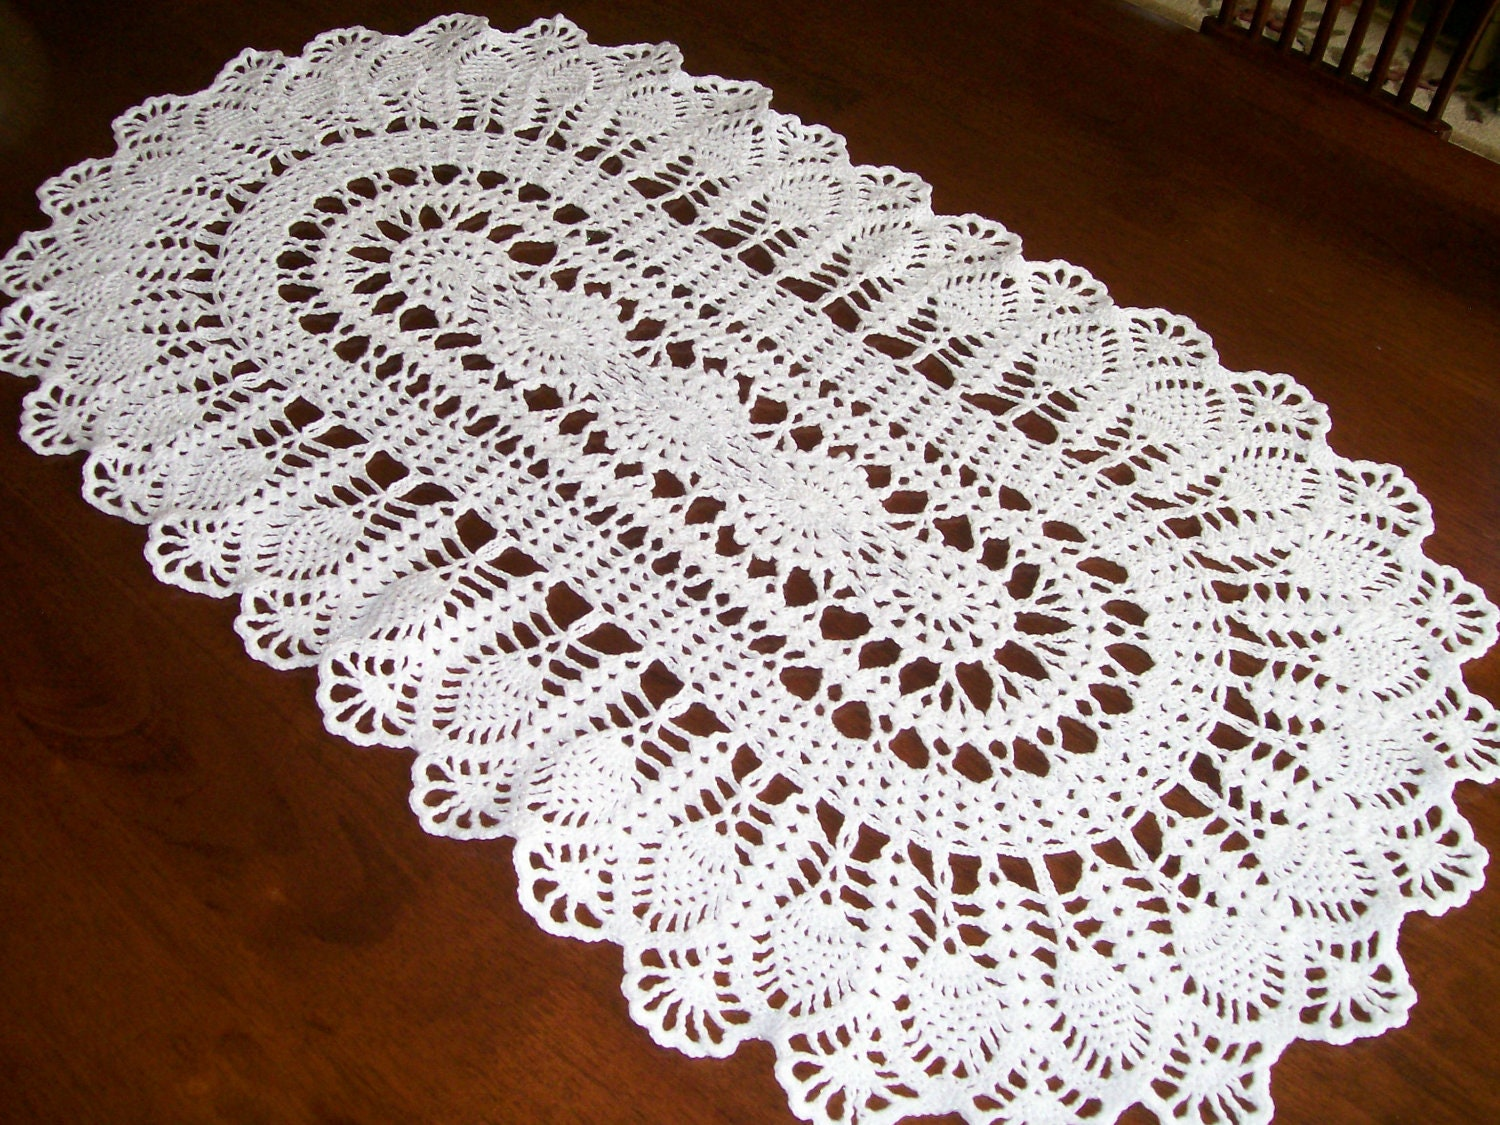 Free Crochet Patterns For Table Doilies : table runner: NEW 403 FREE DOILY TABLE RUNNER PATTERNS